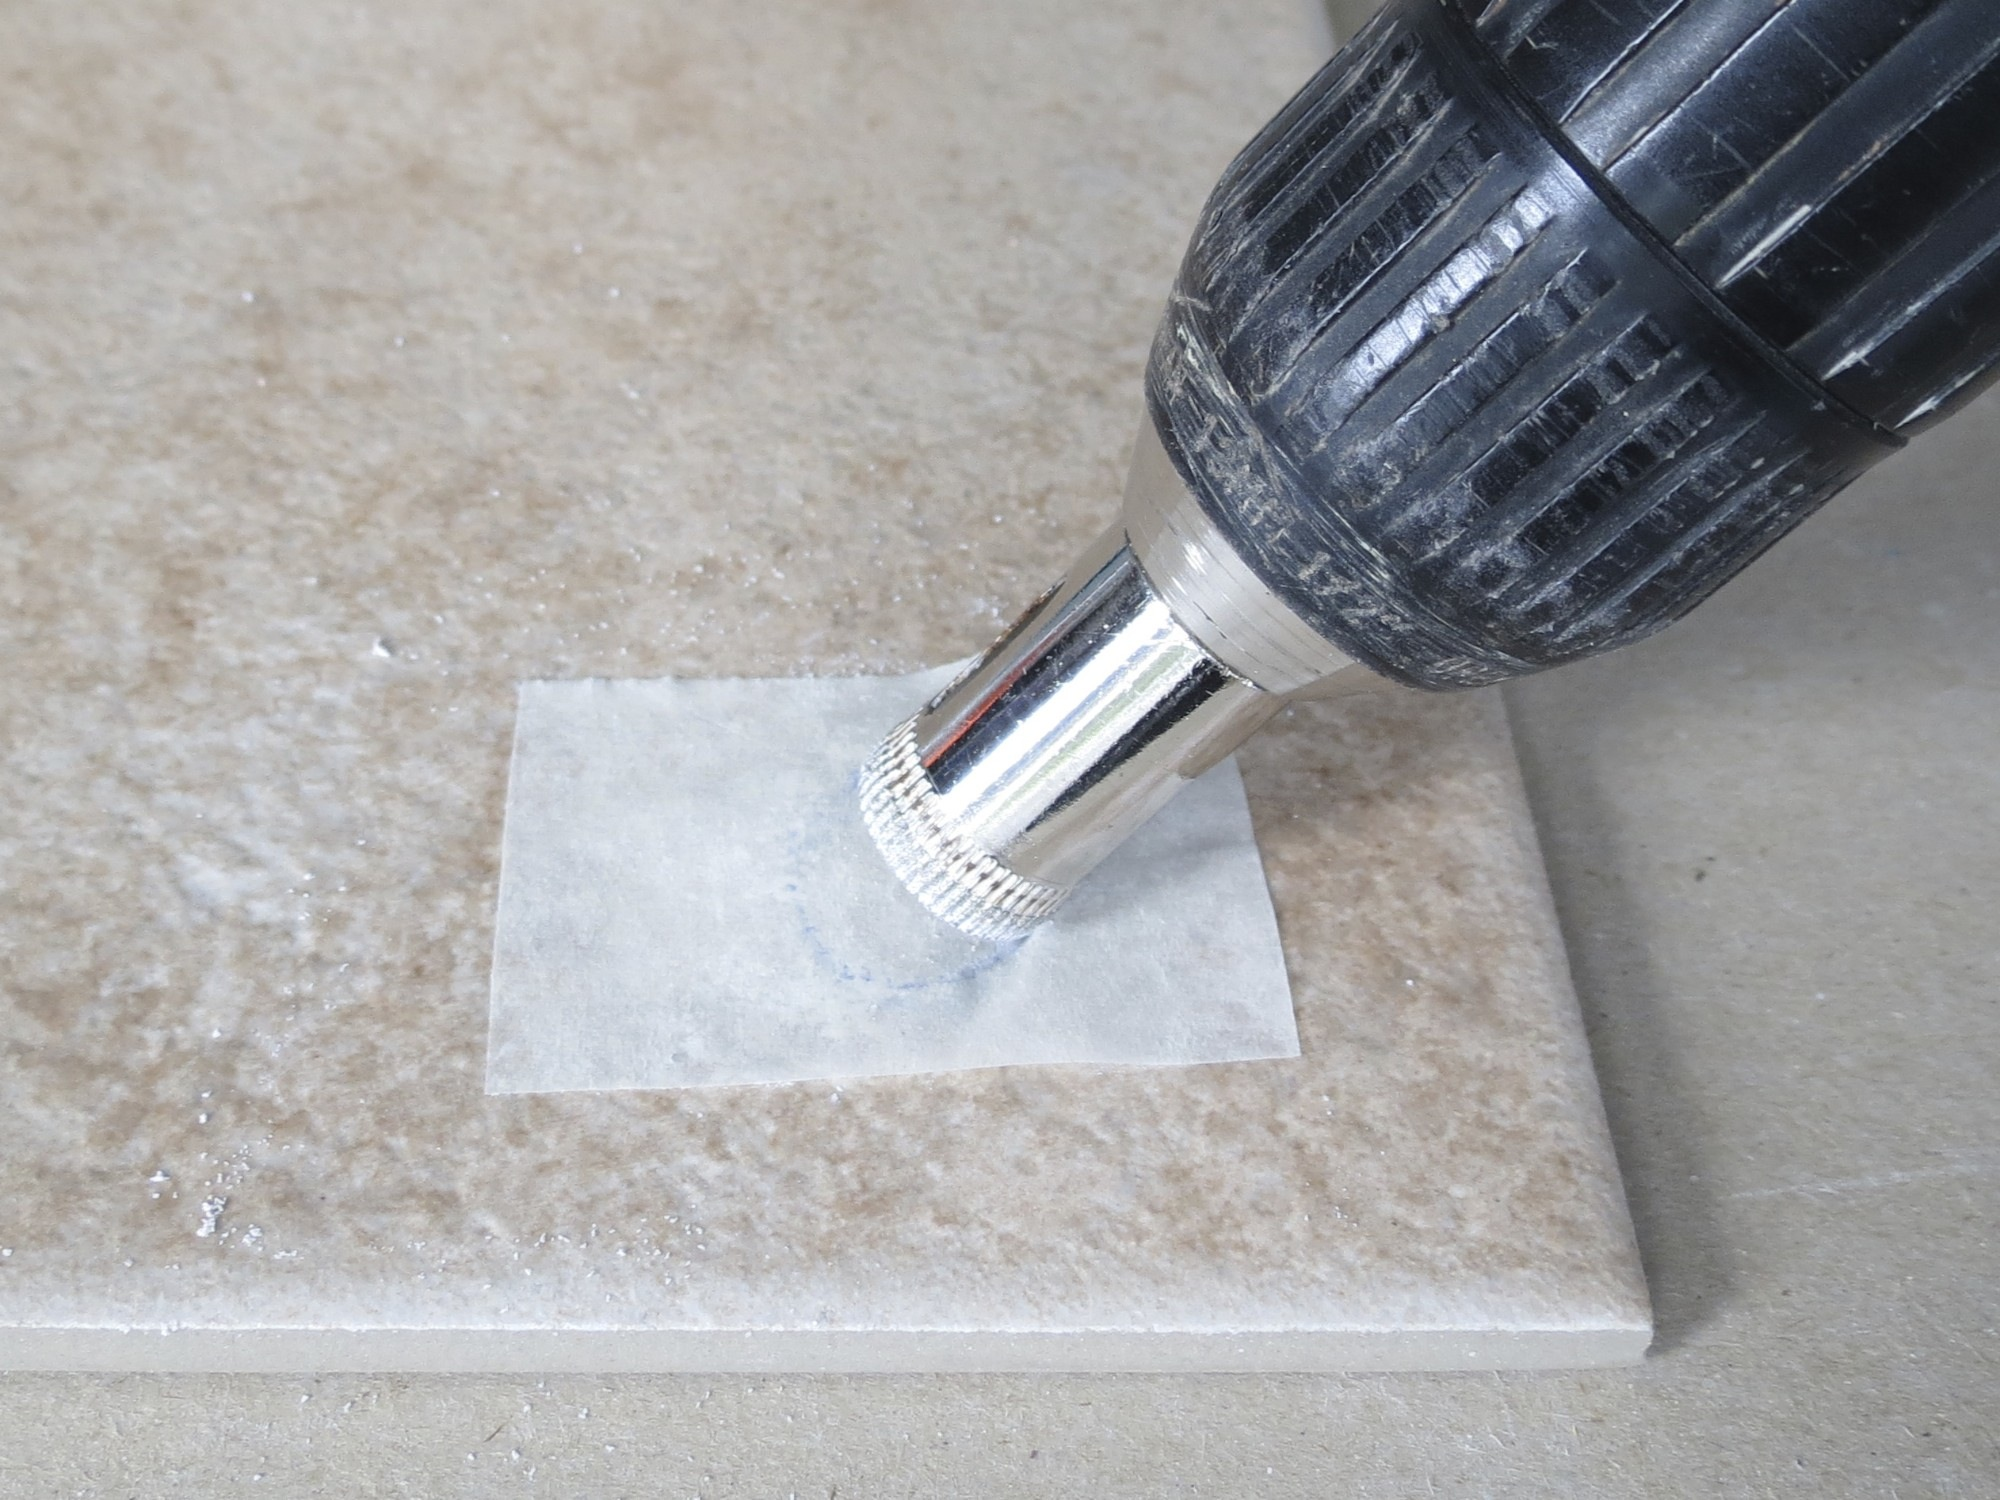 Drilling Into Porcelain Tiles